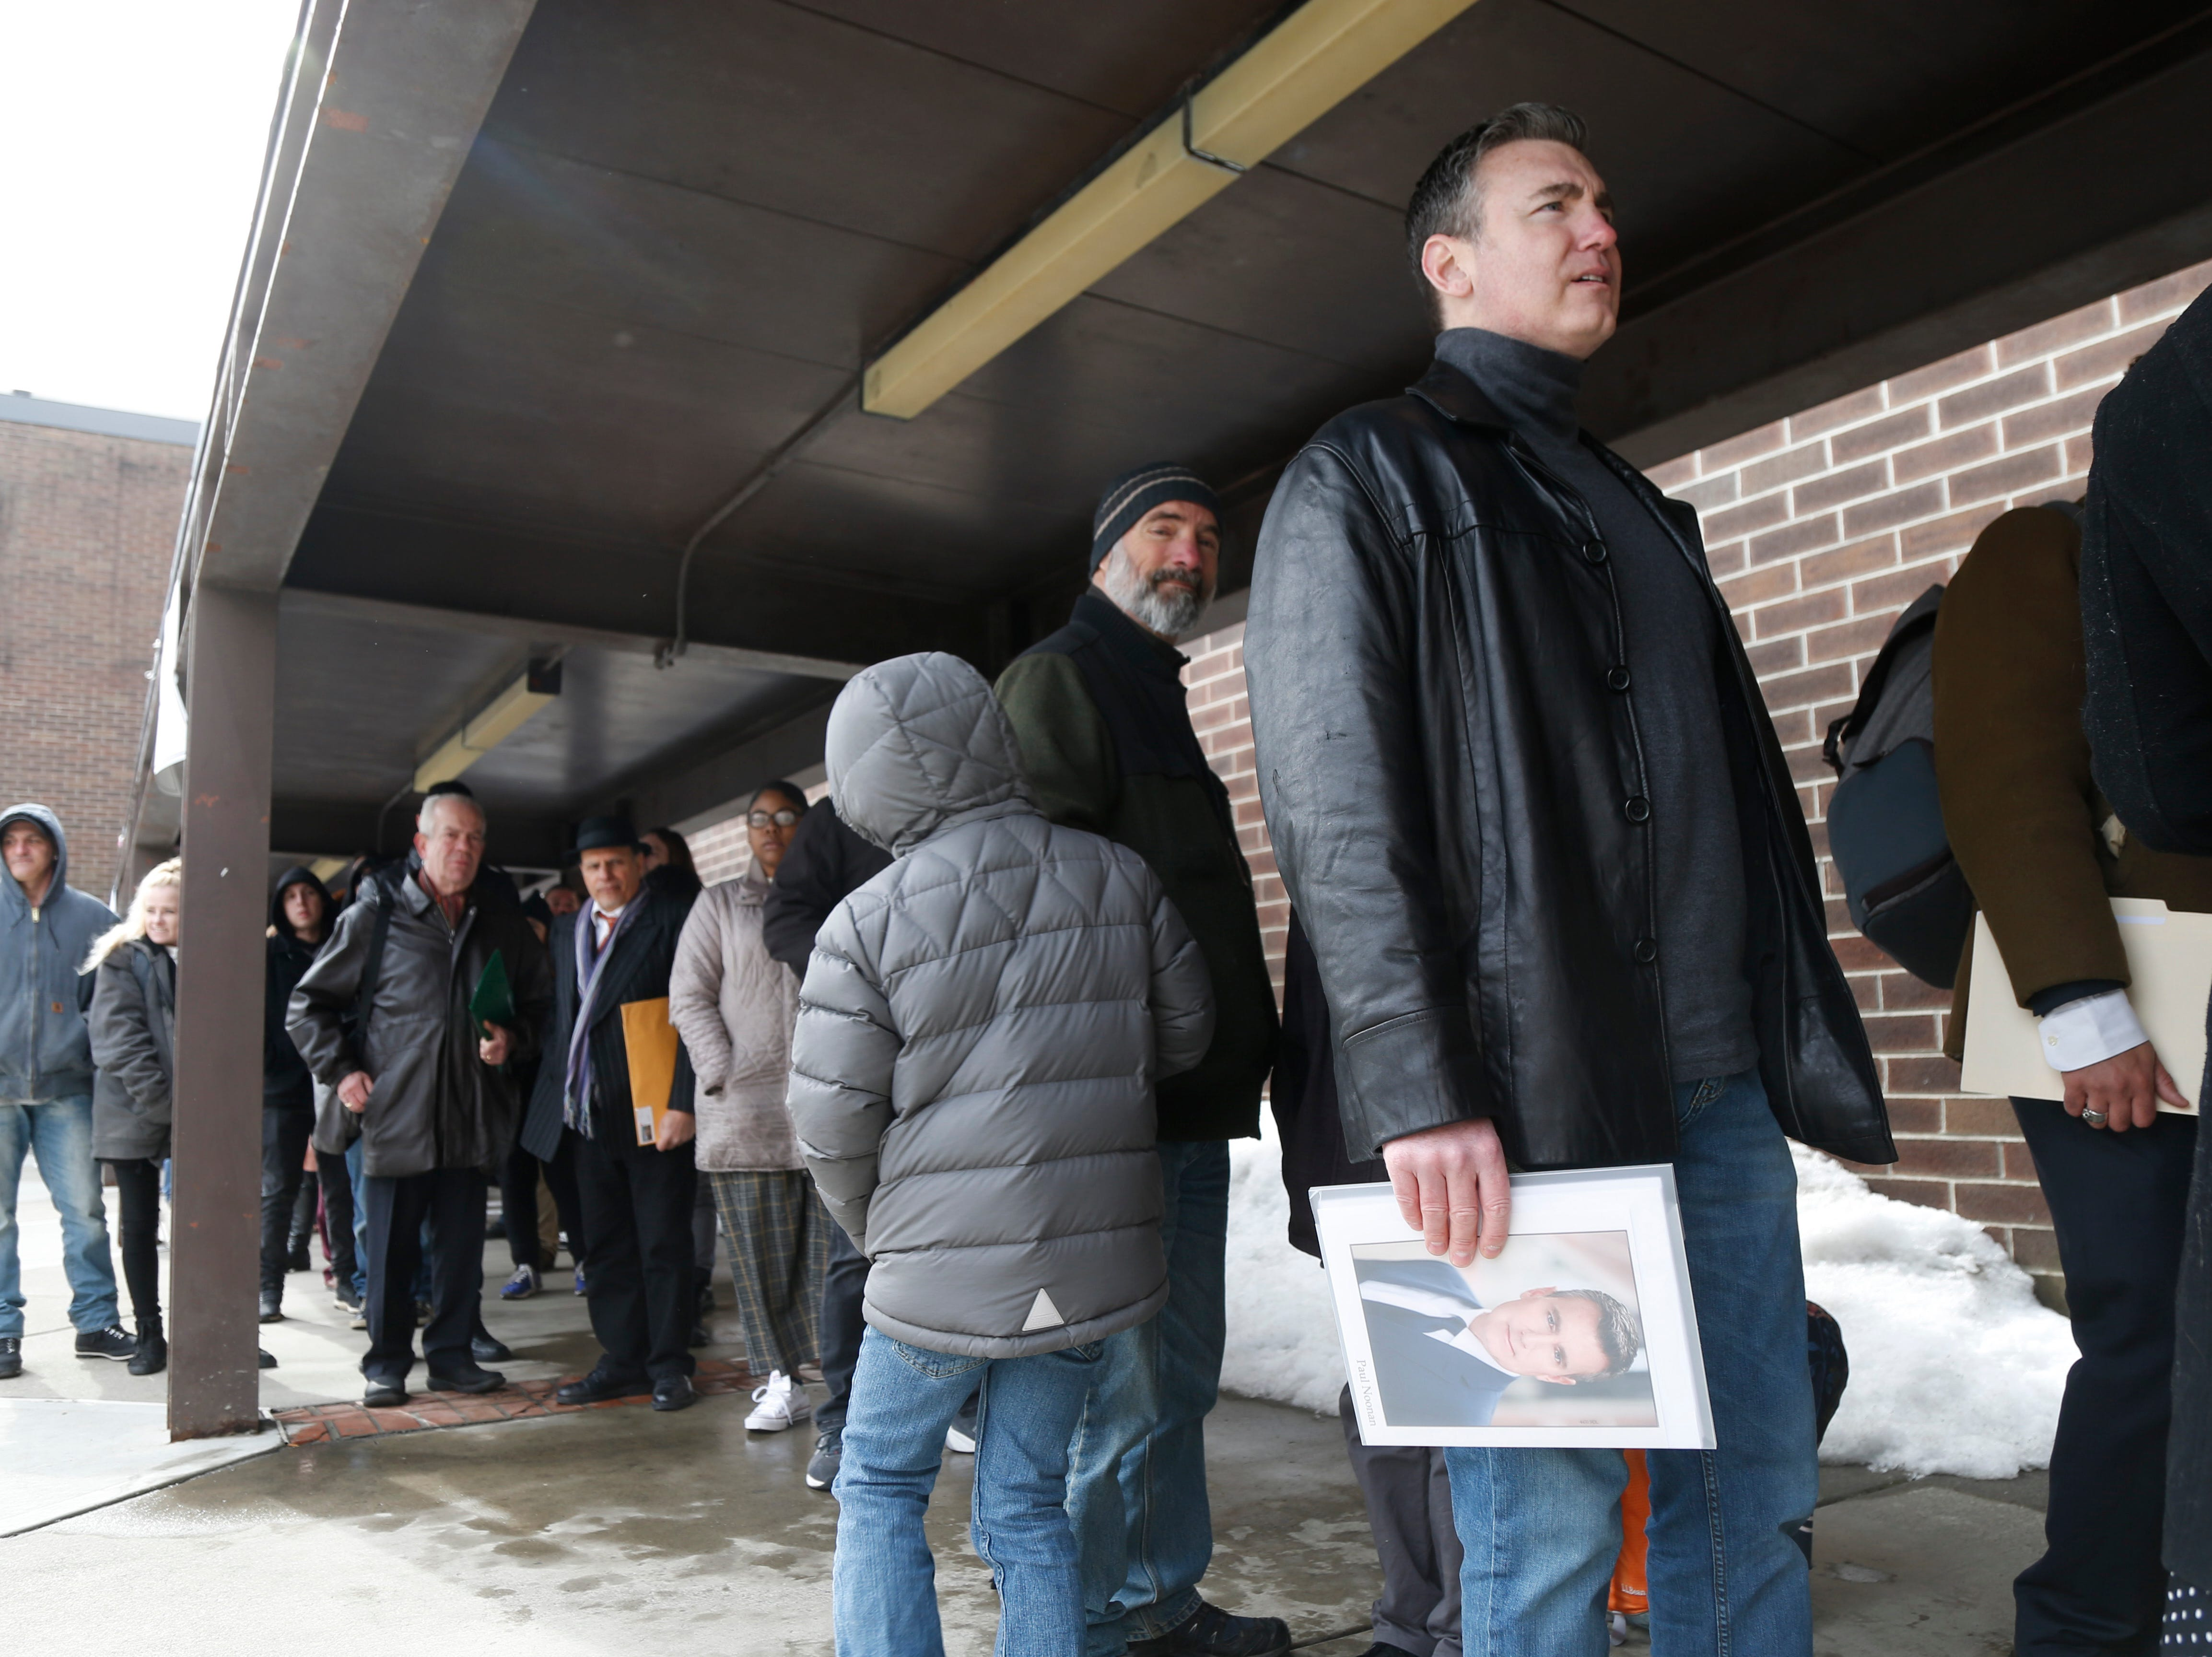 """Pal Noonan from Tiverton Rhode Island waits to enter the Majed J. Nesheiwat Convention Center for Saturday's open casting call for an HBO series staring Mark Ruffalo, called """"I Know This Much is True"""" in the City of Poughkeepsie on Feb 23, 2019."""